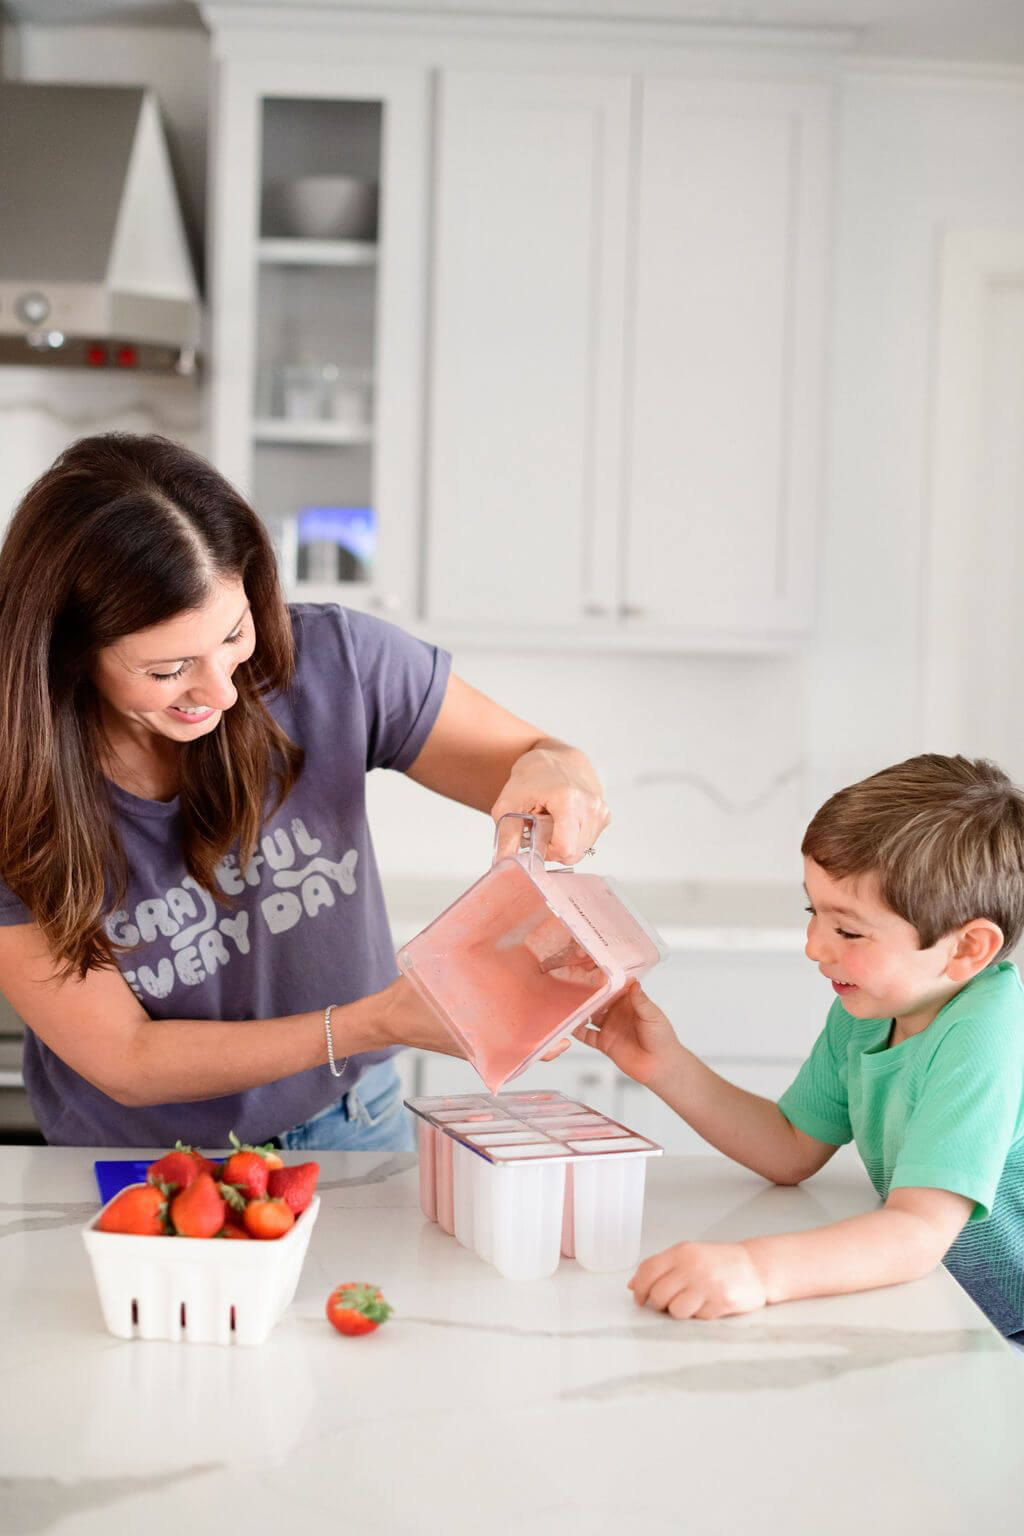 mom and son pouring the blended fruit into popsicles molds